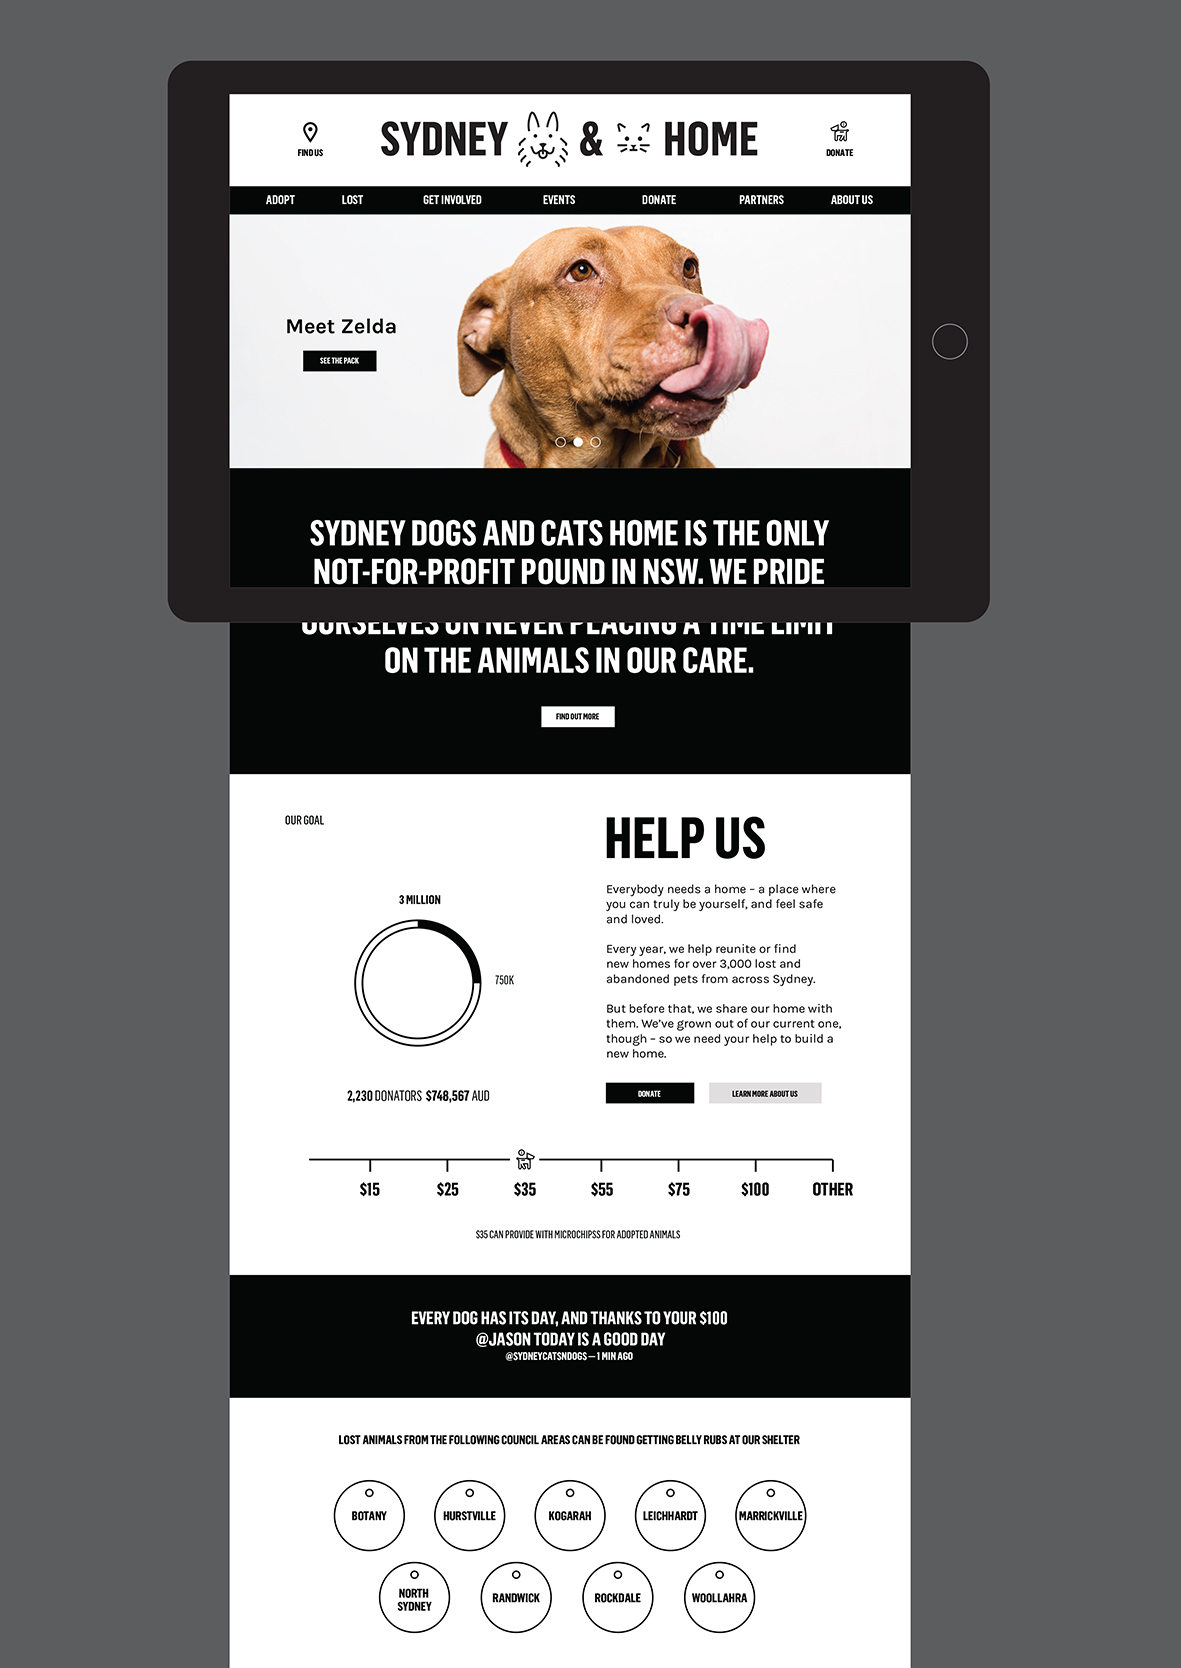 Australia shelter dogs cats care adopt identity Generator logos data-driven animal ForthePeople sdch dog